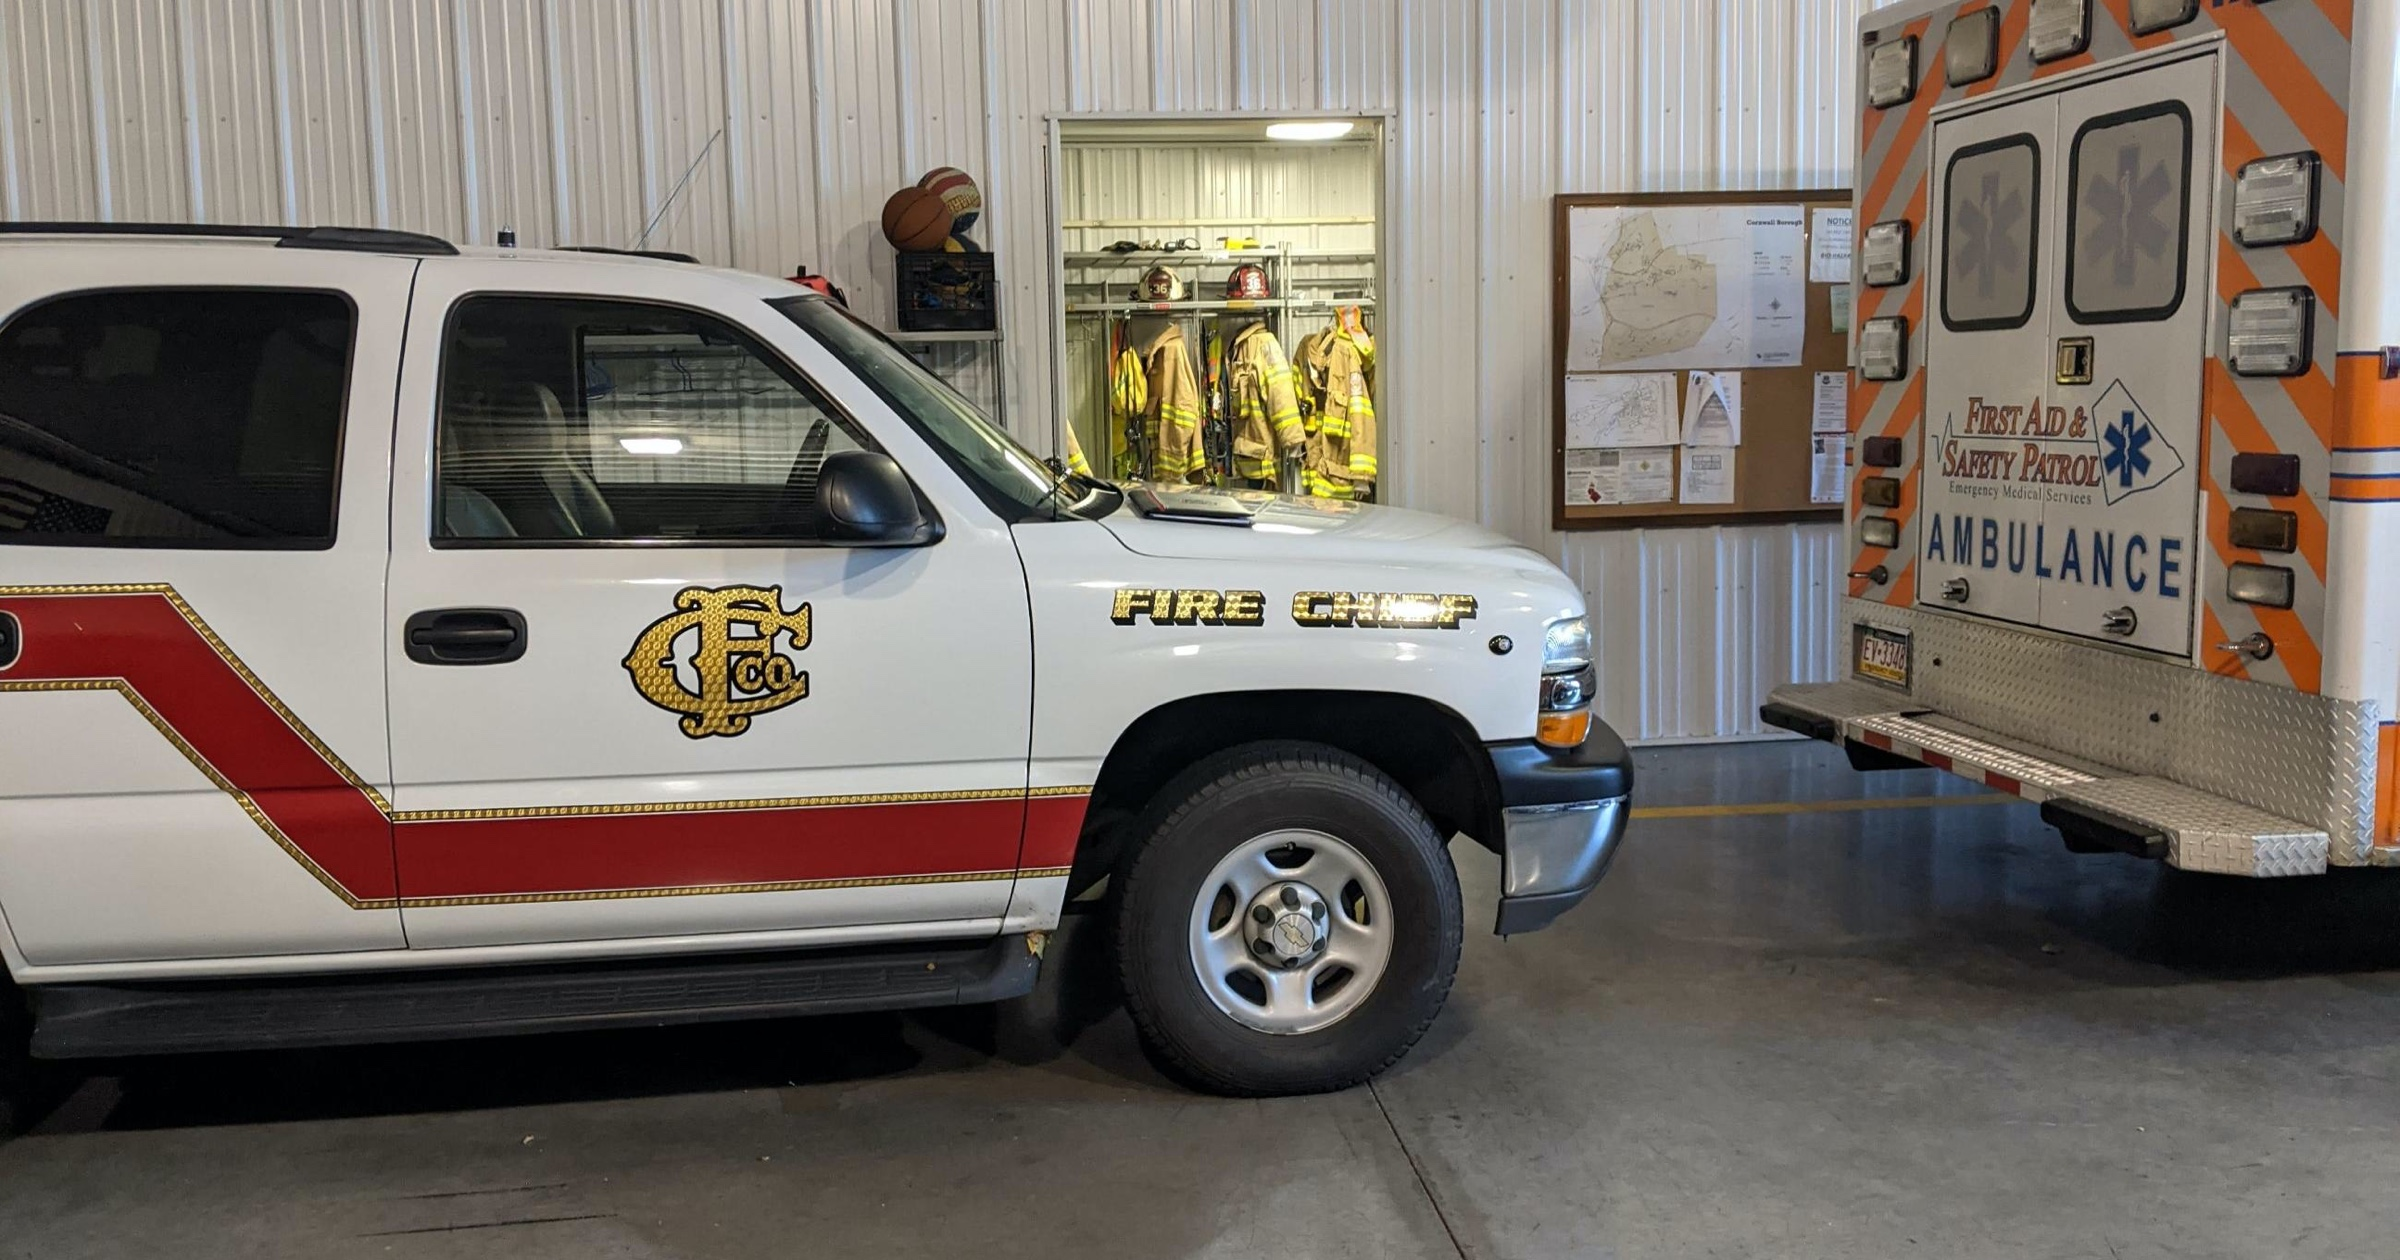 FASP signs agreement with Cornwall Borough & Community Fire Company to expand area ambulance coverage